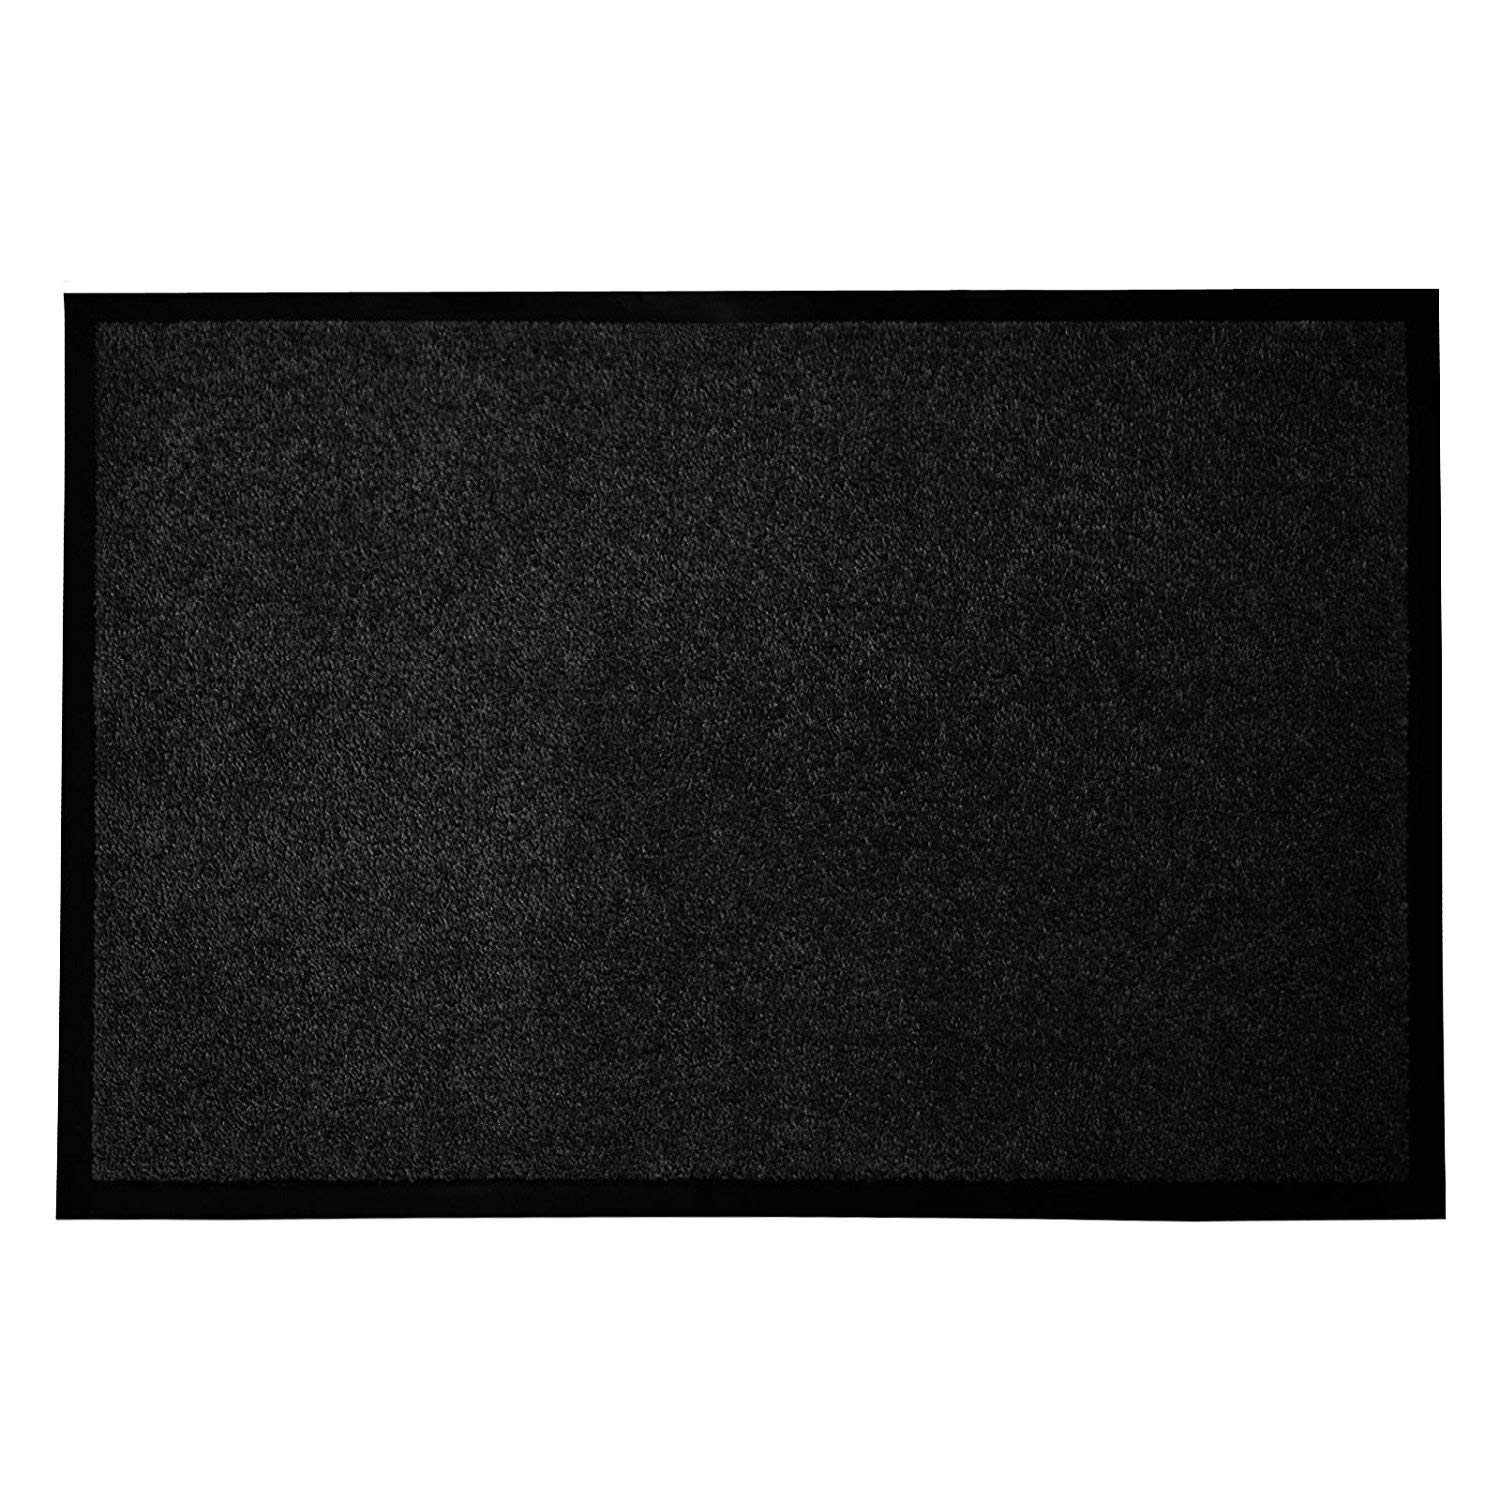 casa pura Entrance Mat | Europe's # 1 Front Door Mat for Home and Business | Black - 36'' x 48''